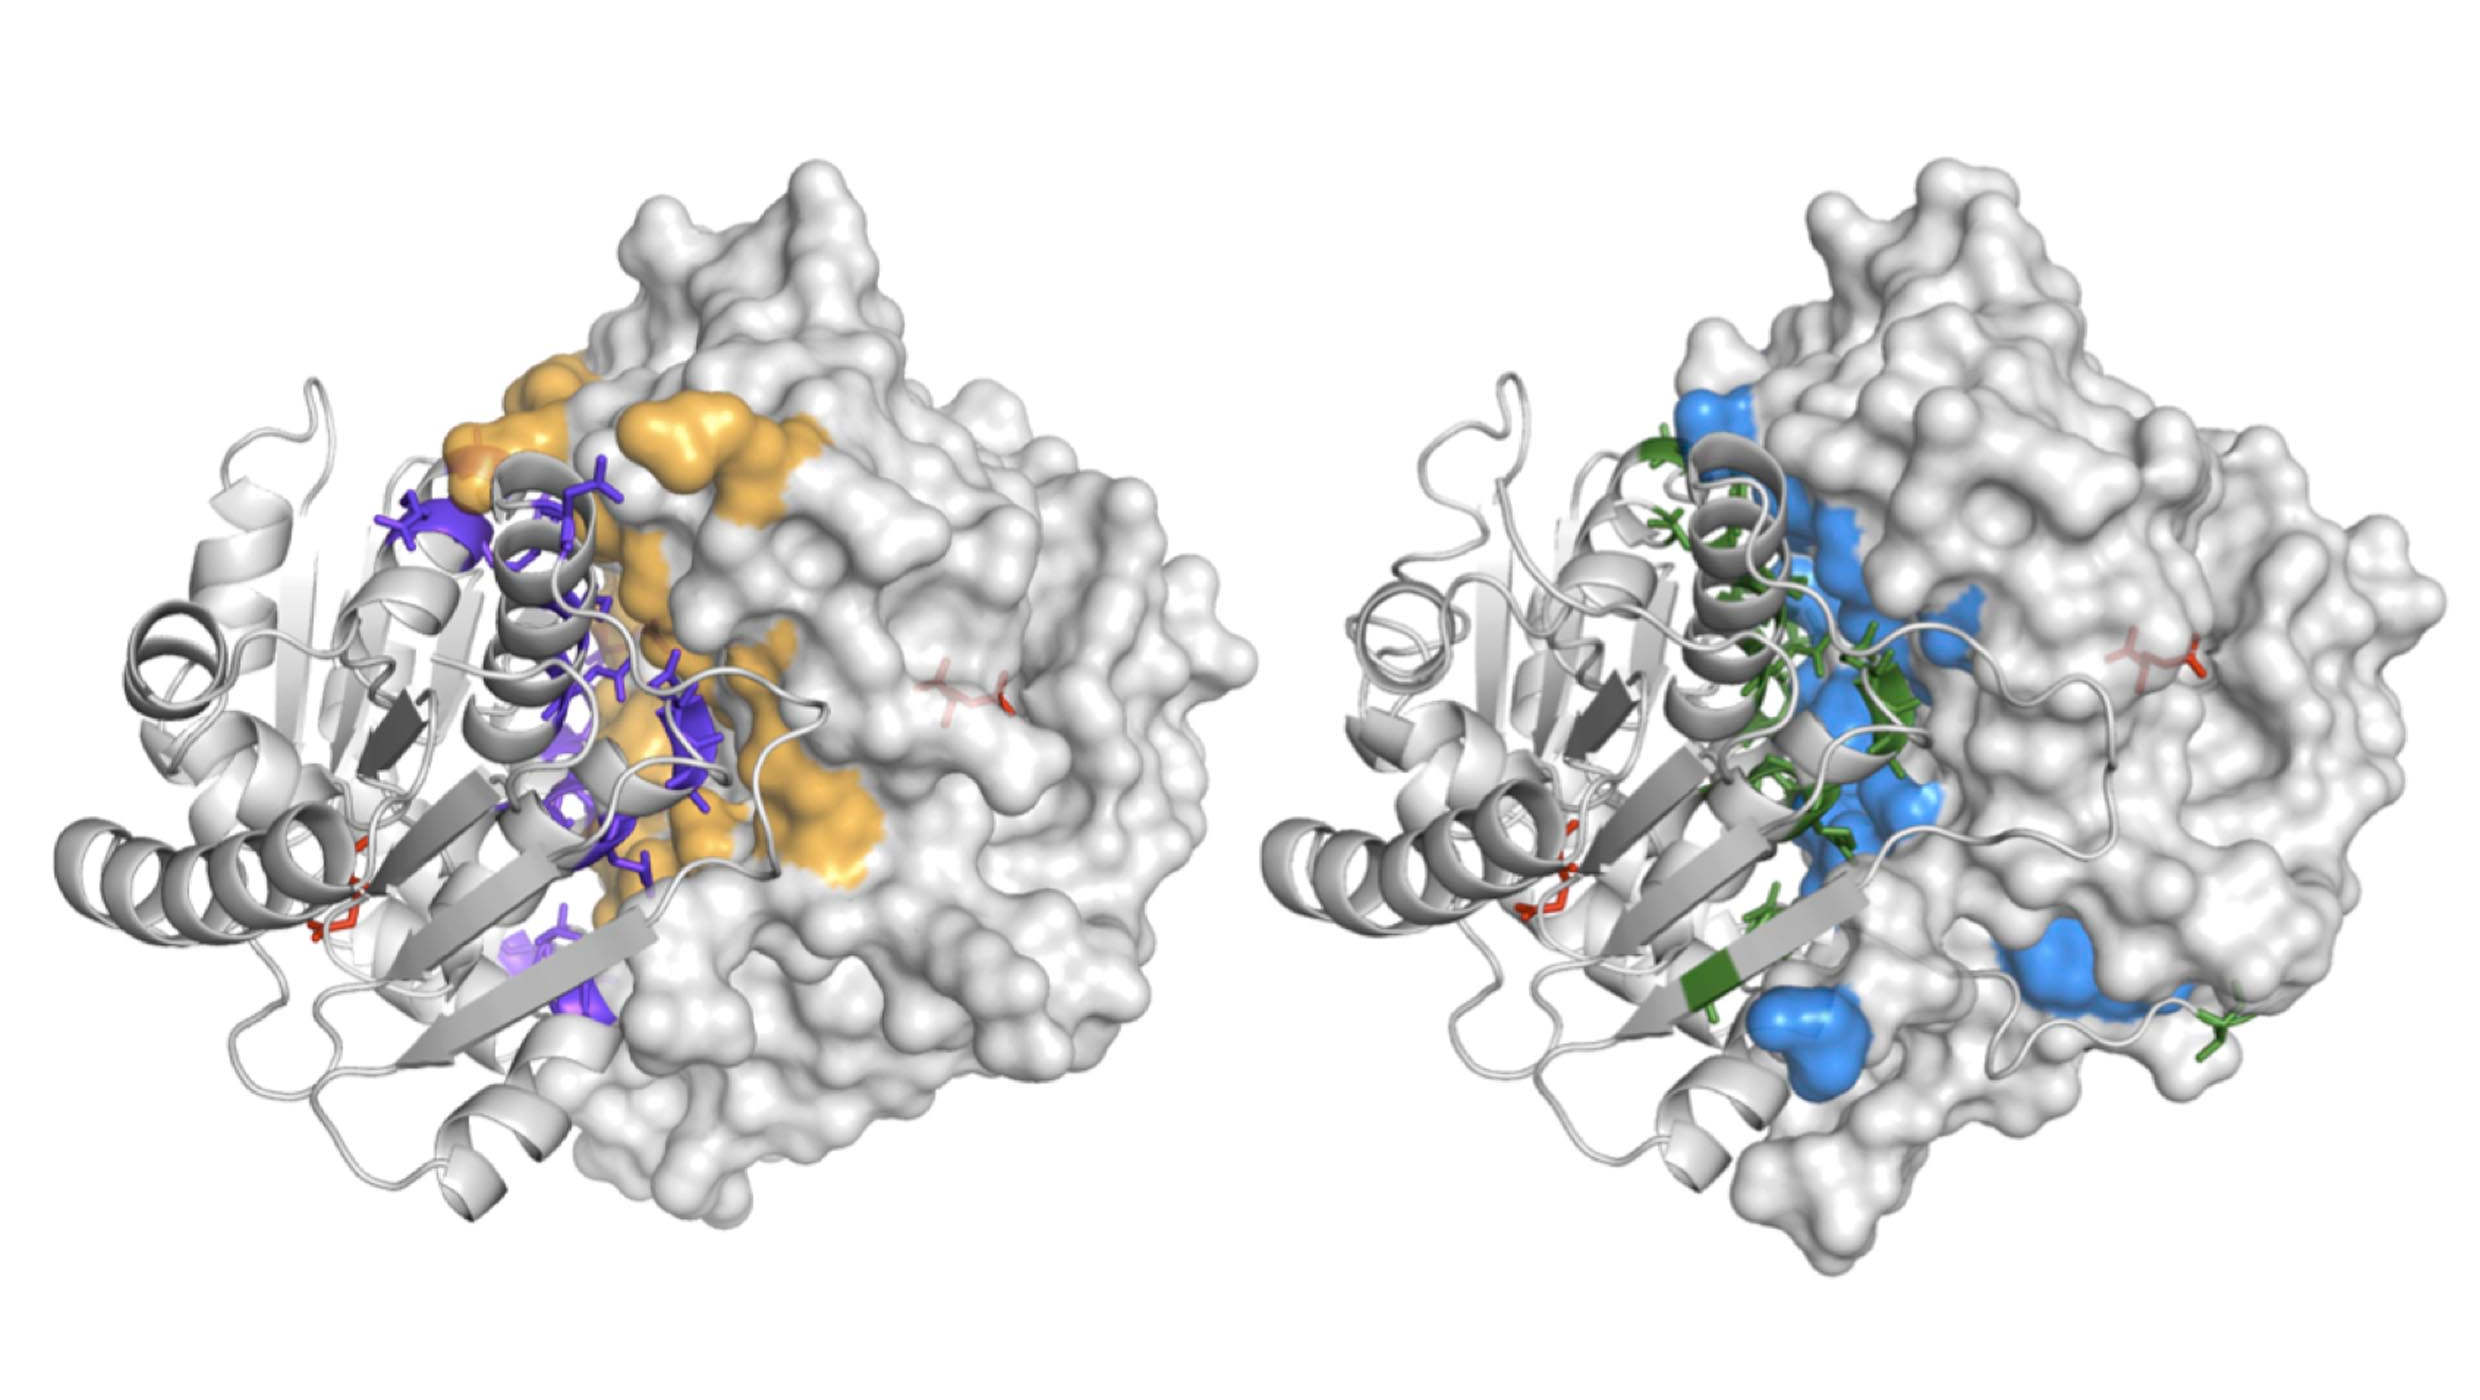 Enzyme structure potential catalyst for TB drug discovery